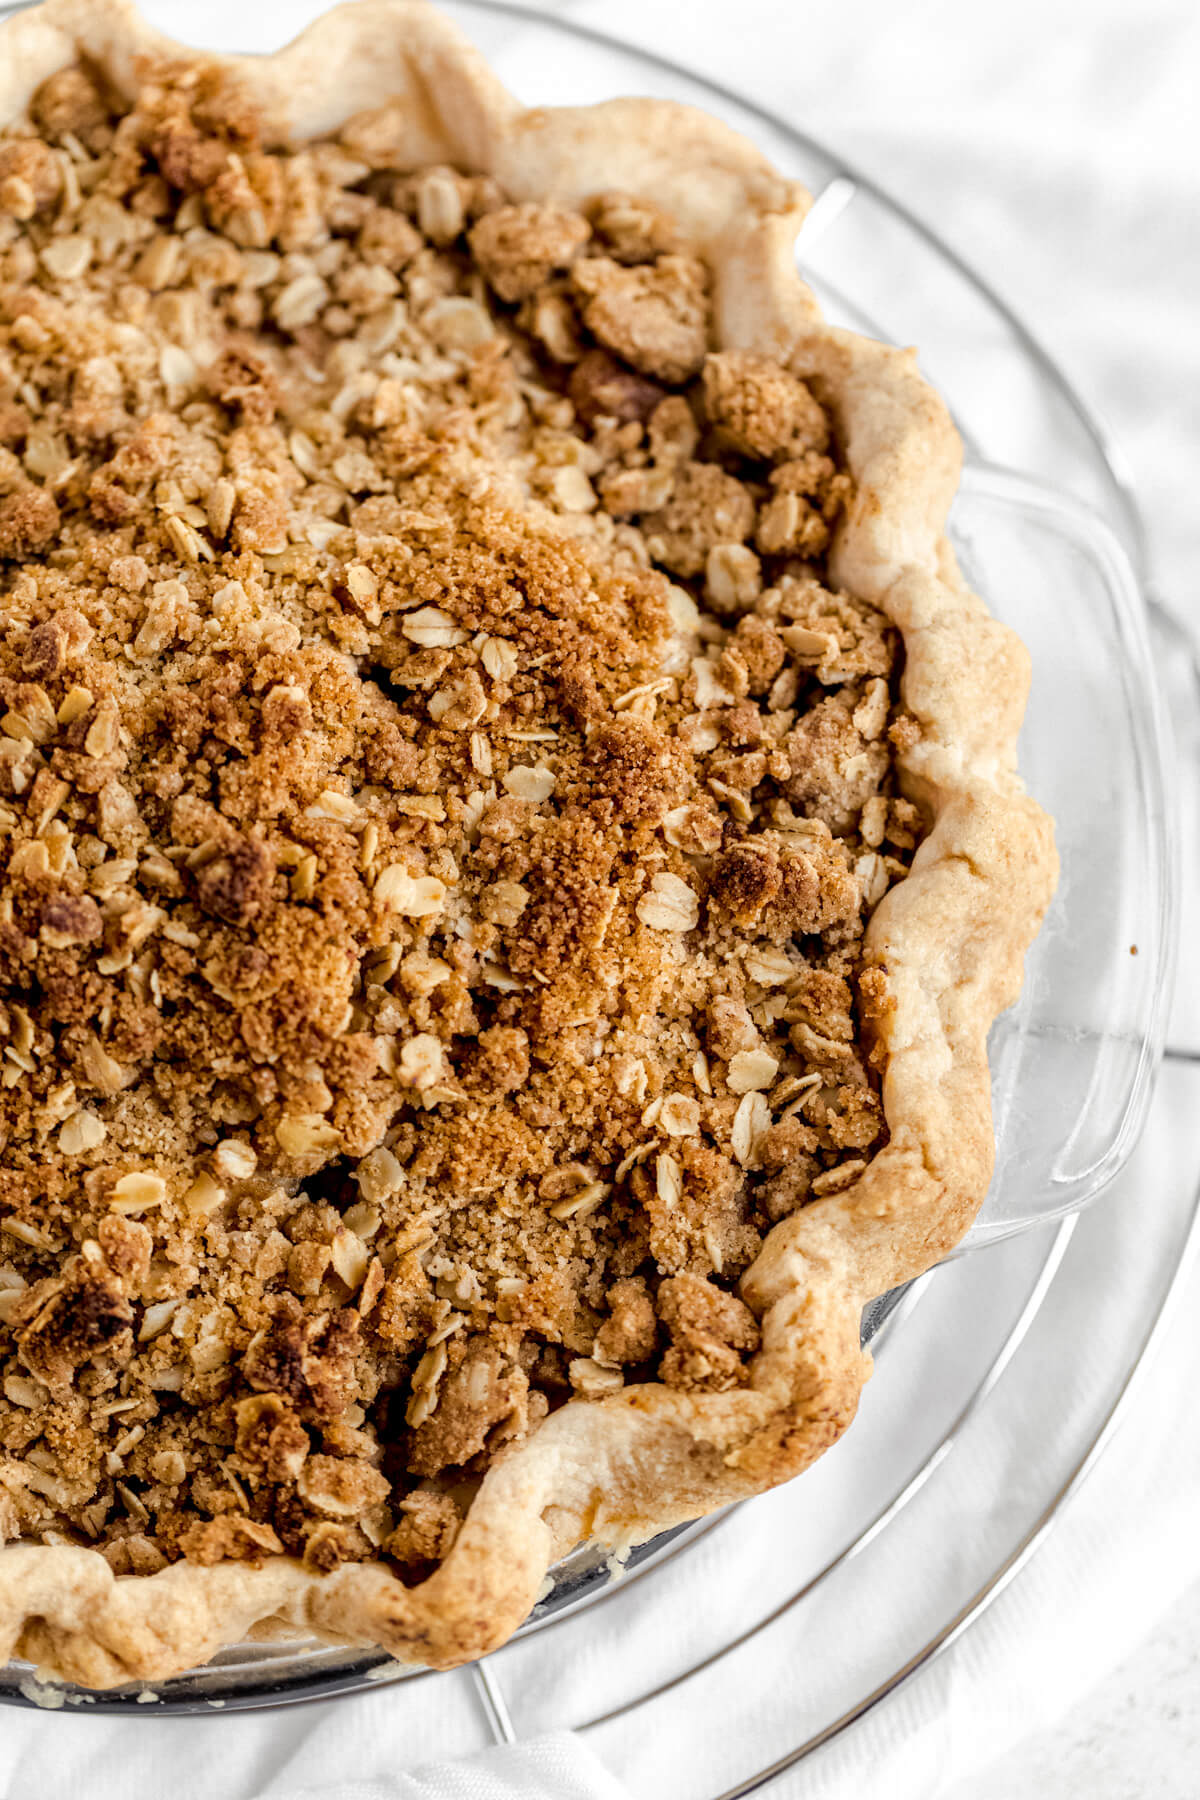 close up of baked crumble topped pie